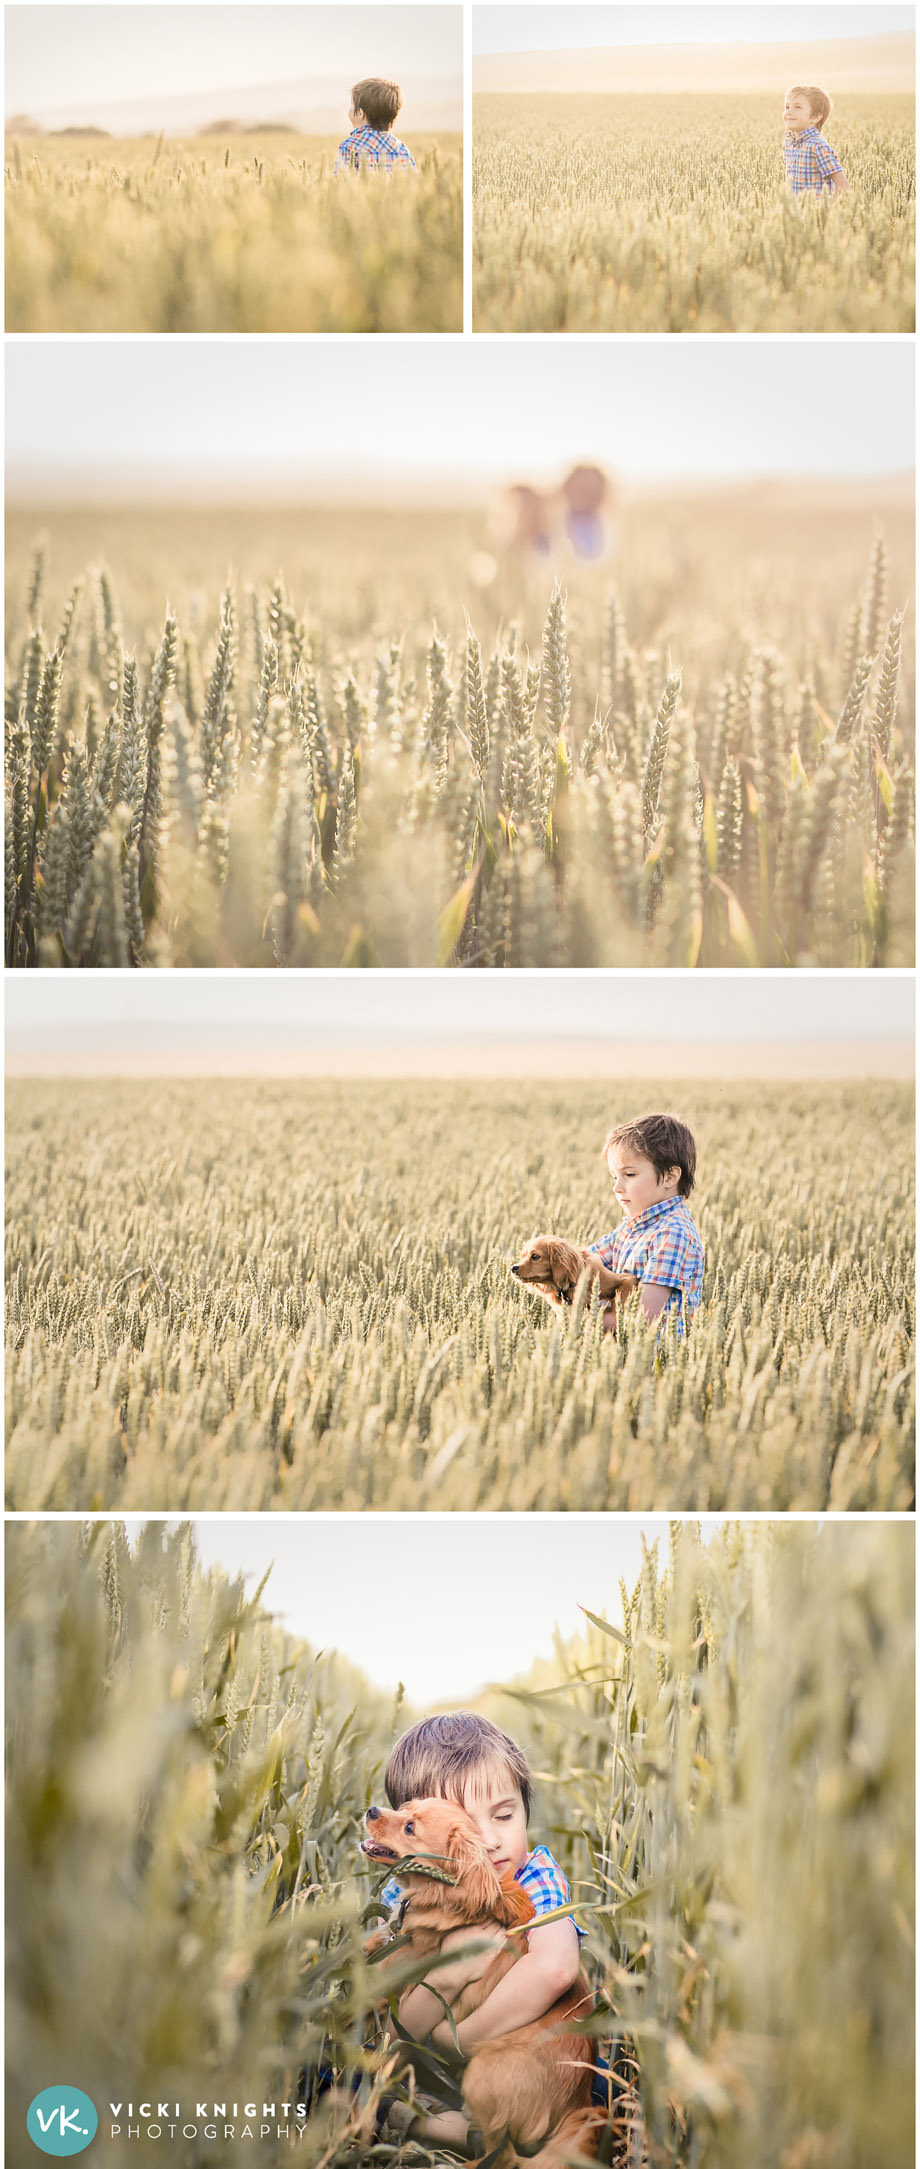 golden-hour-photography-tips